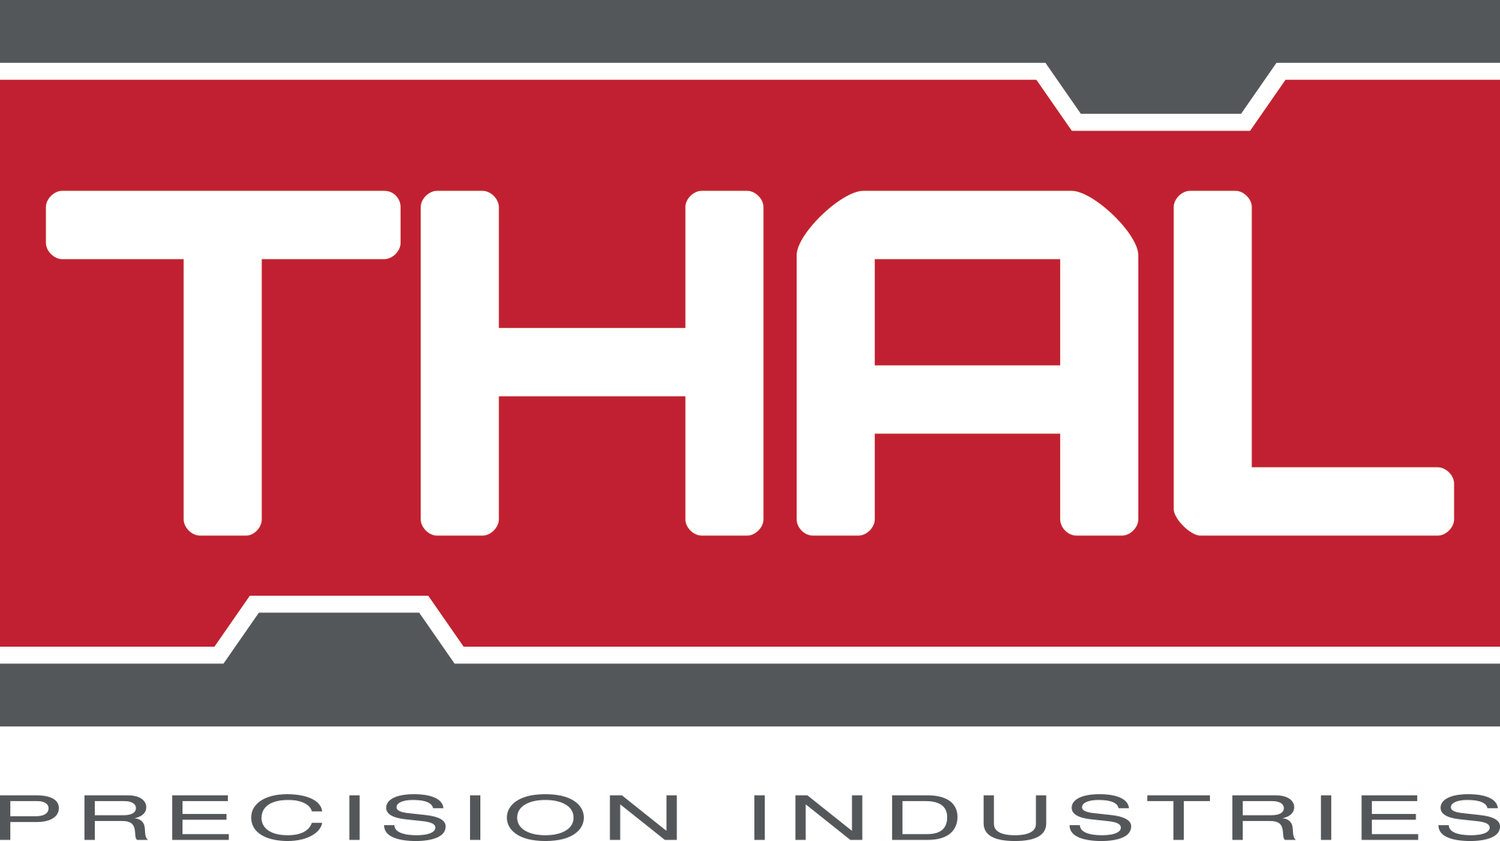 Thal Precision Industries